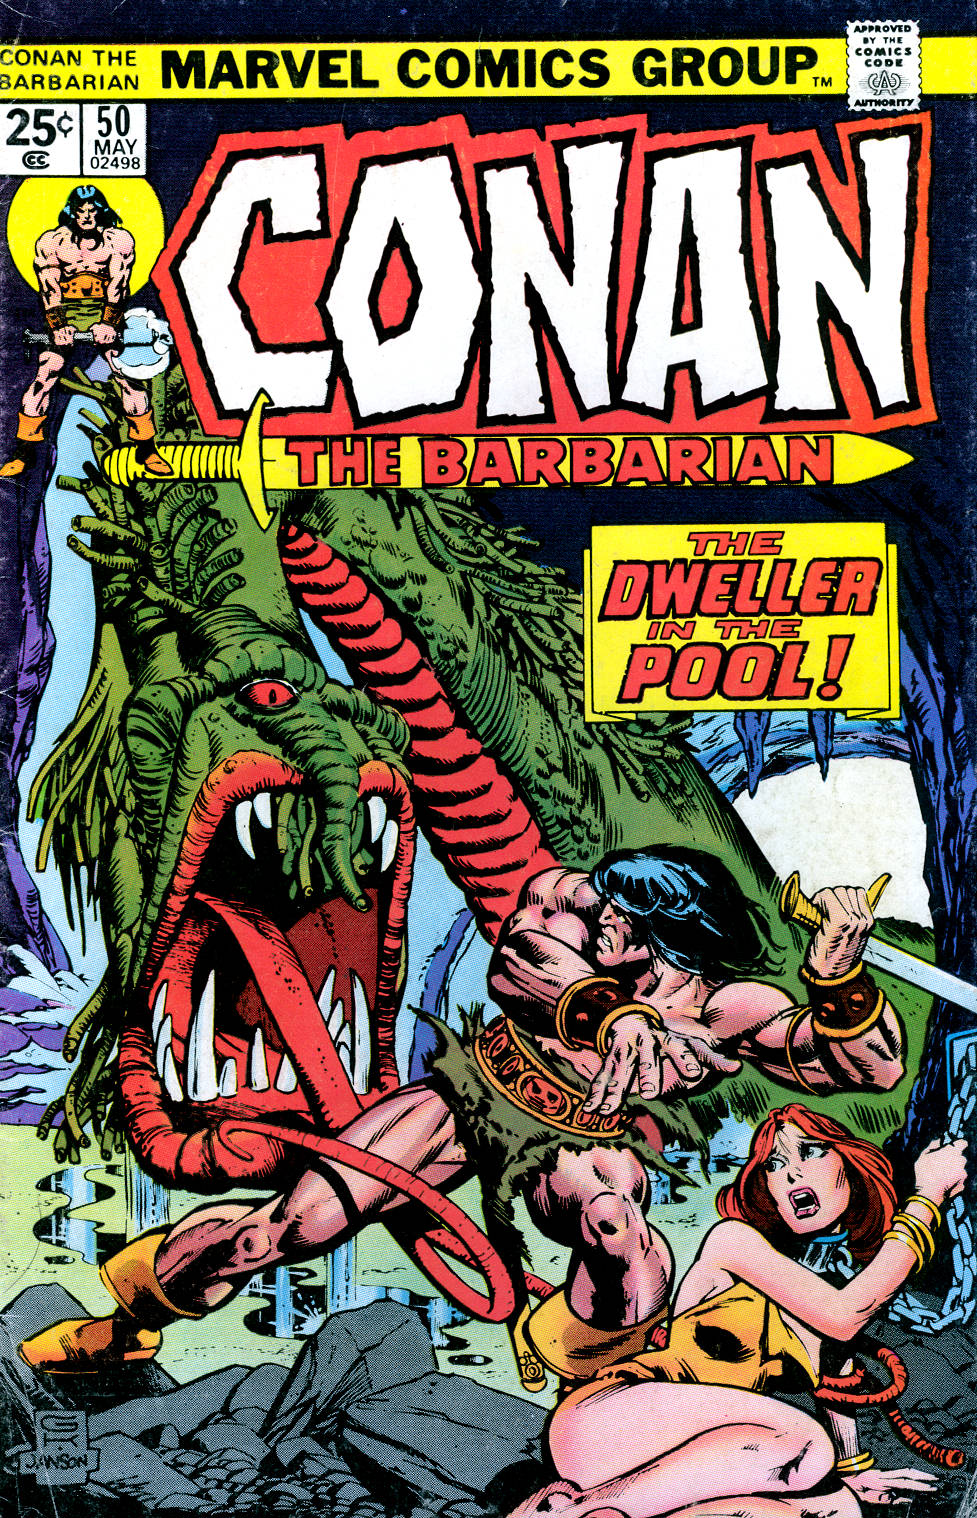 Conan the Barbarian (1970) Issue #50 #62 - English 1